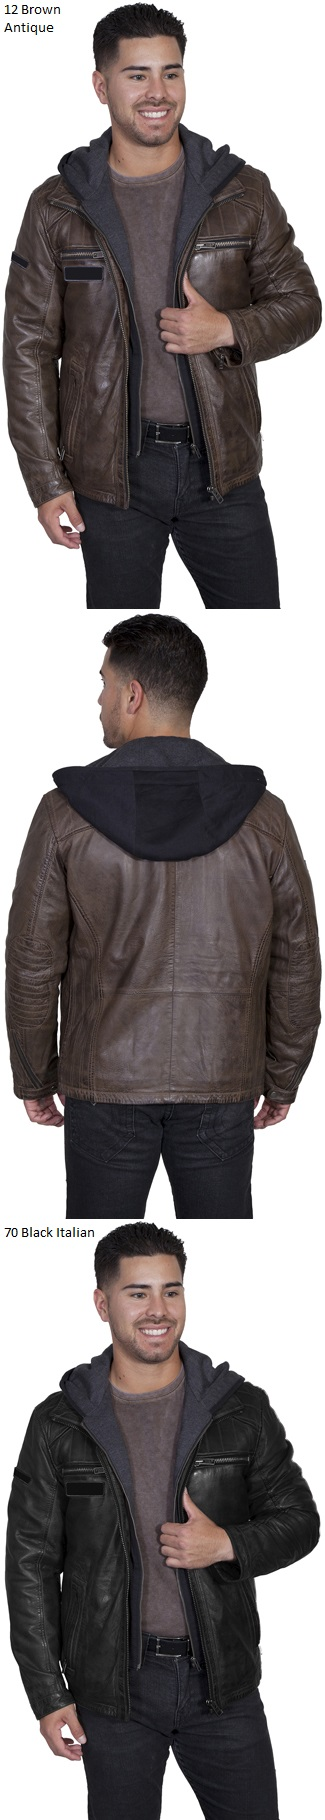 Men's Lamb Leather Jacket with Zip Out Front and Hood Insert